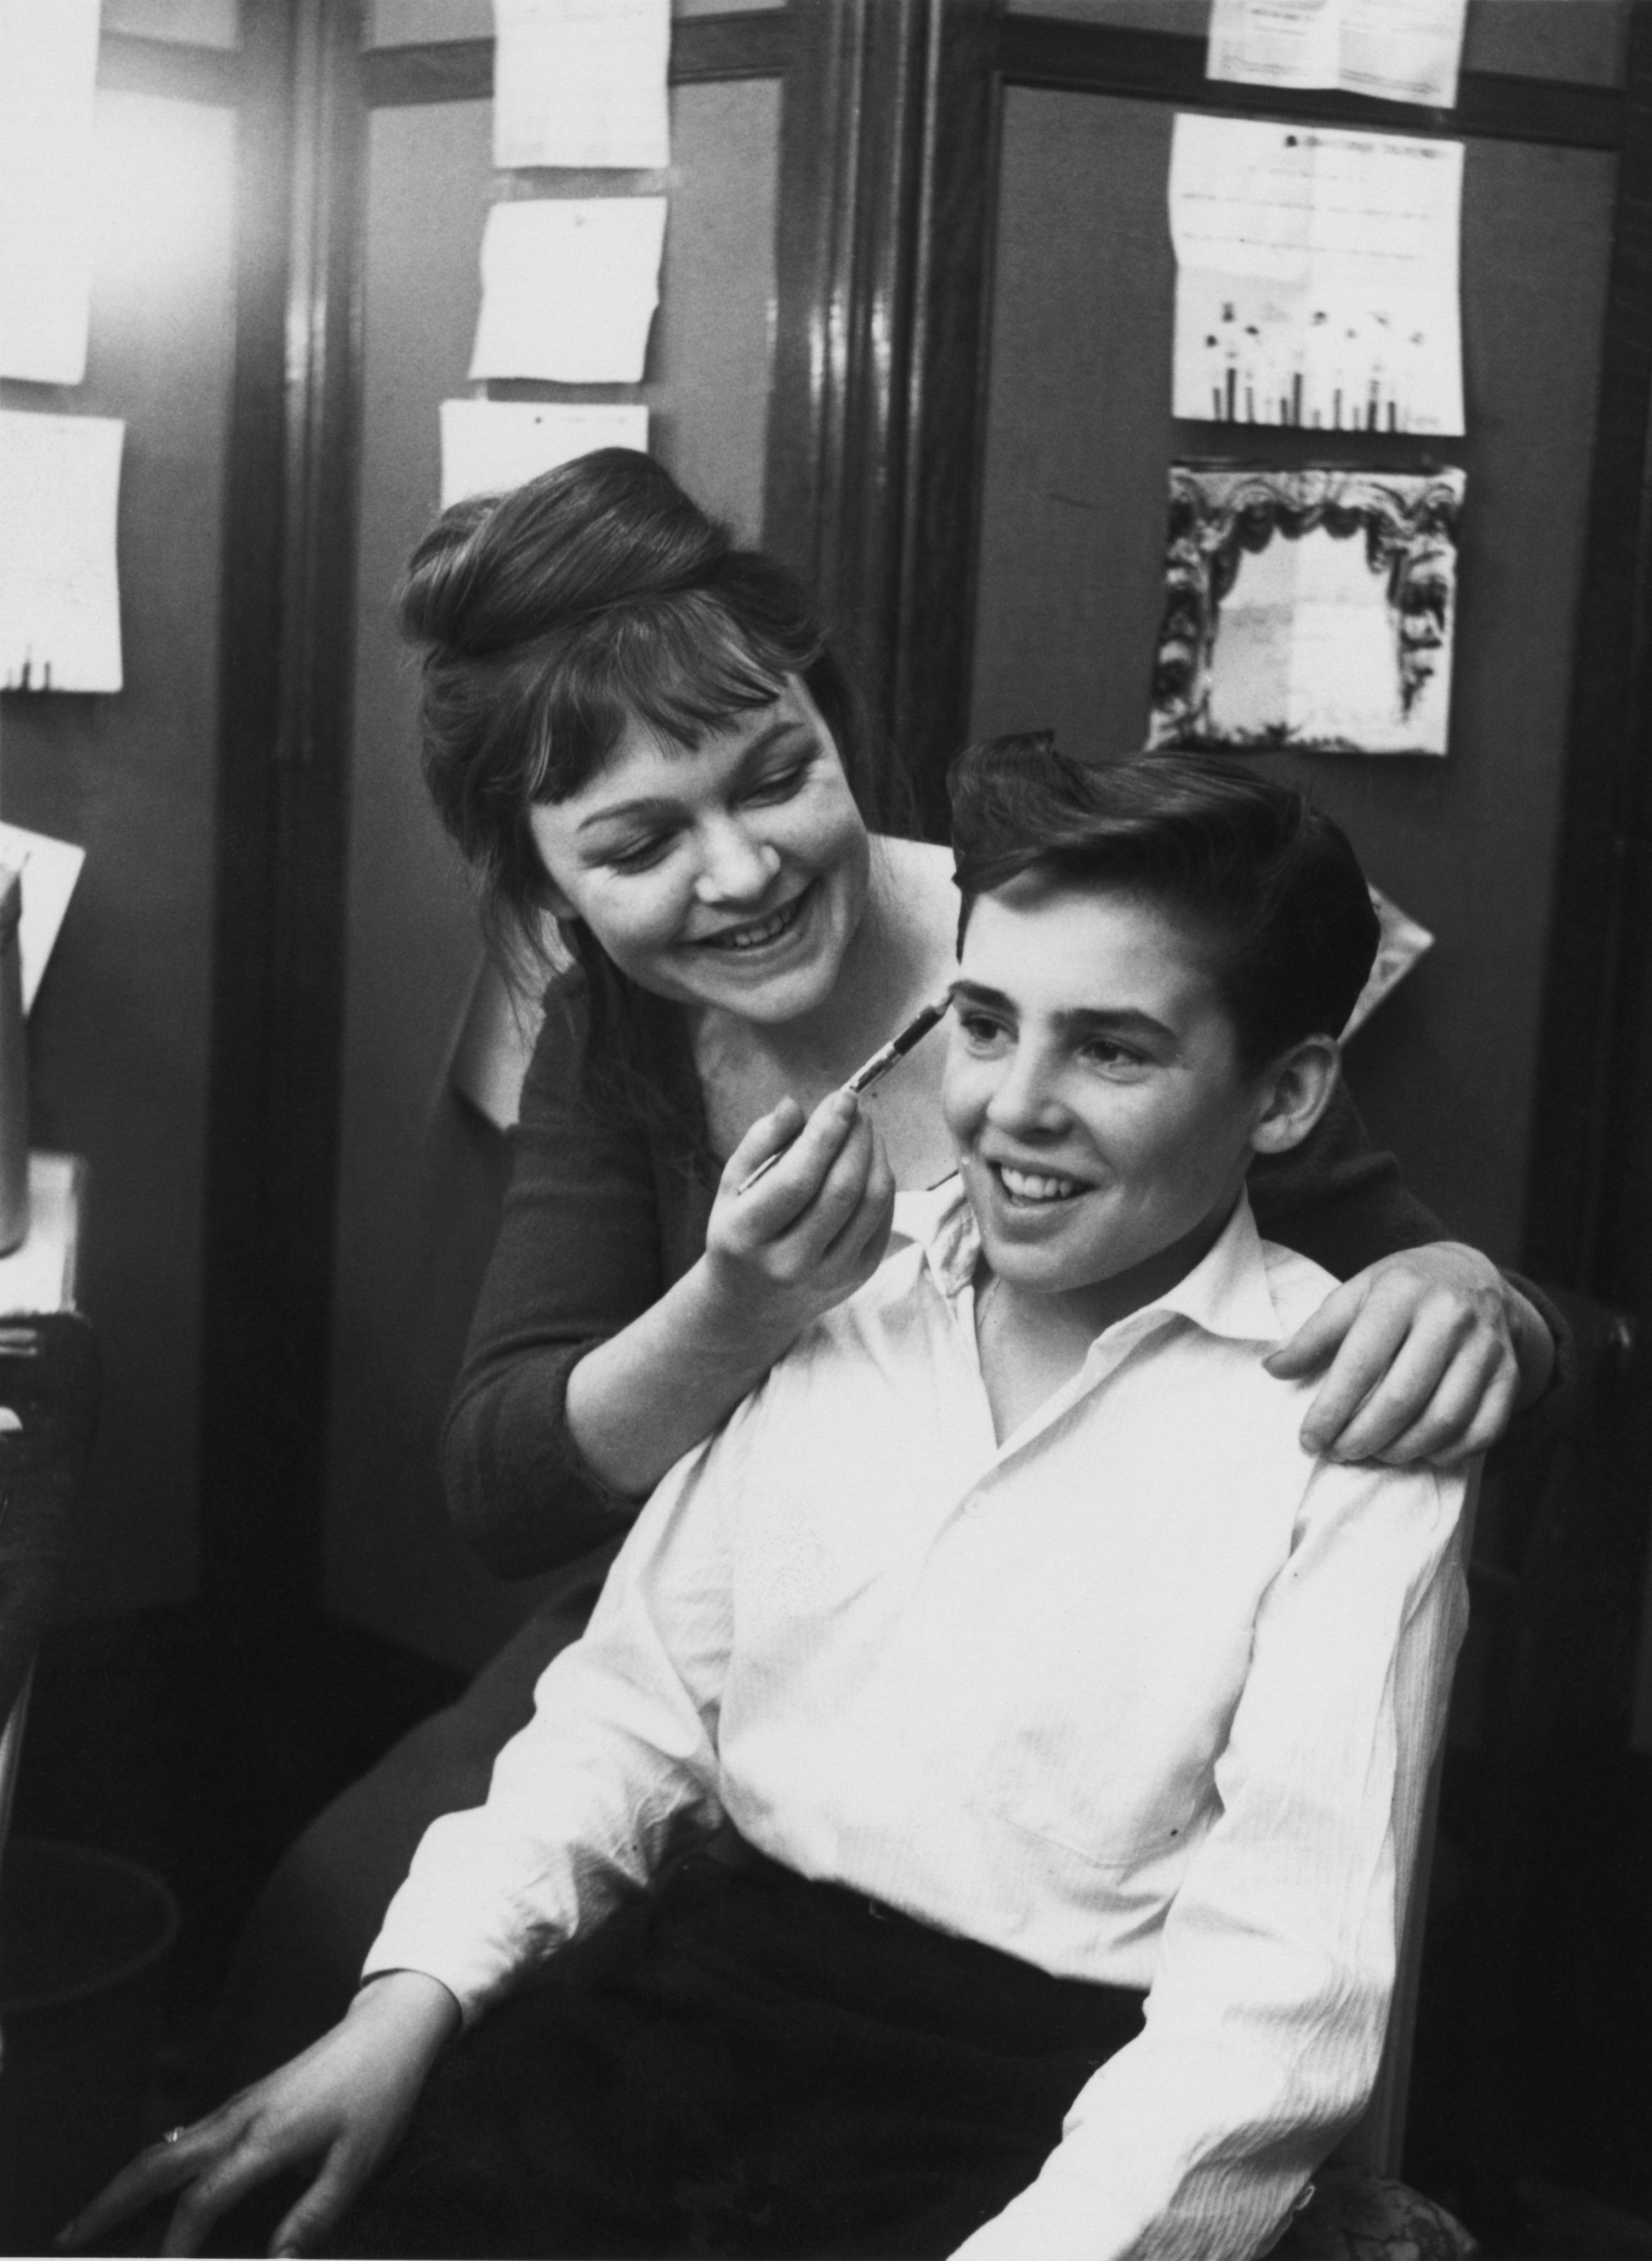 Child star Davy with actress Vivienne Martin in 1962 for a production of the musical <I>Oliver!<I>